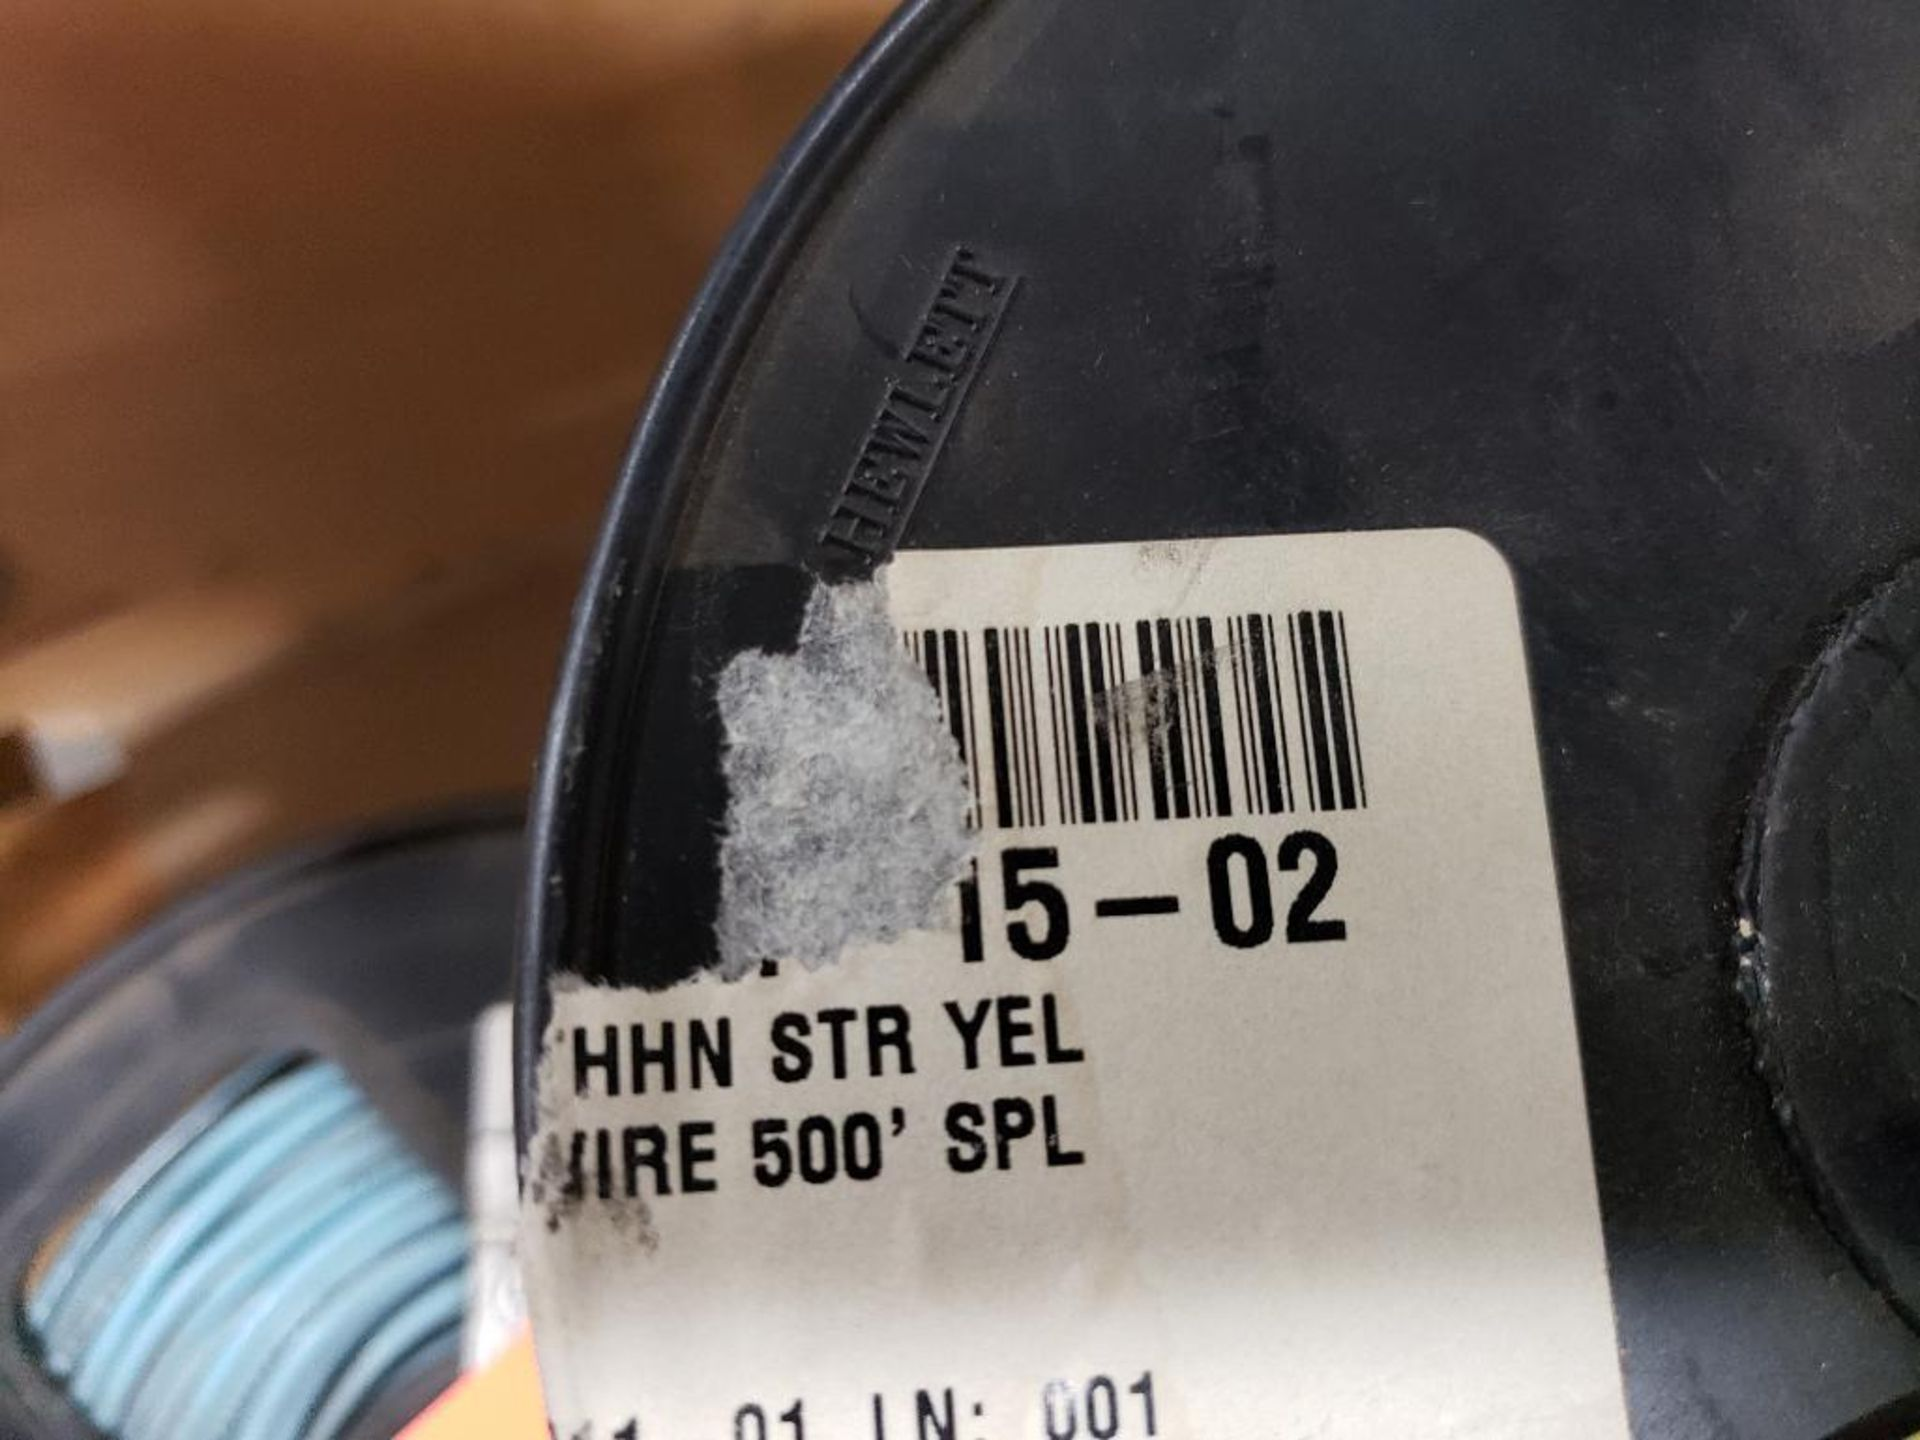 Qty 4 - Spool of contractor wire. 14-Yellow, 14-Blue. - Image 4 of 6